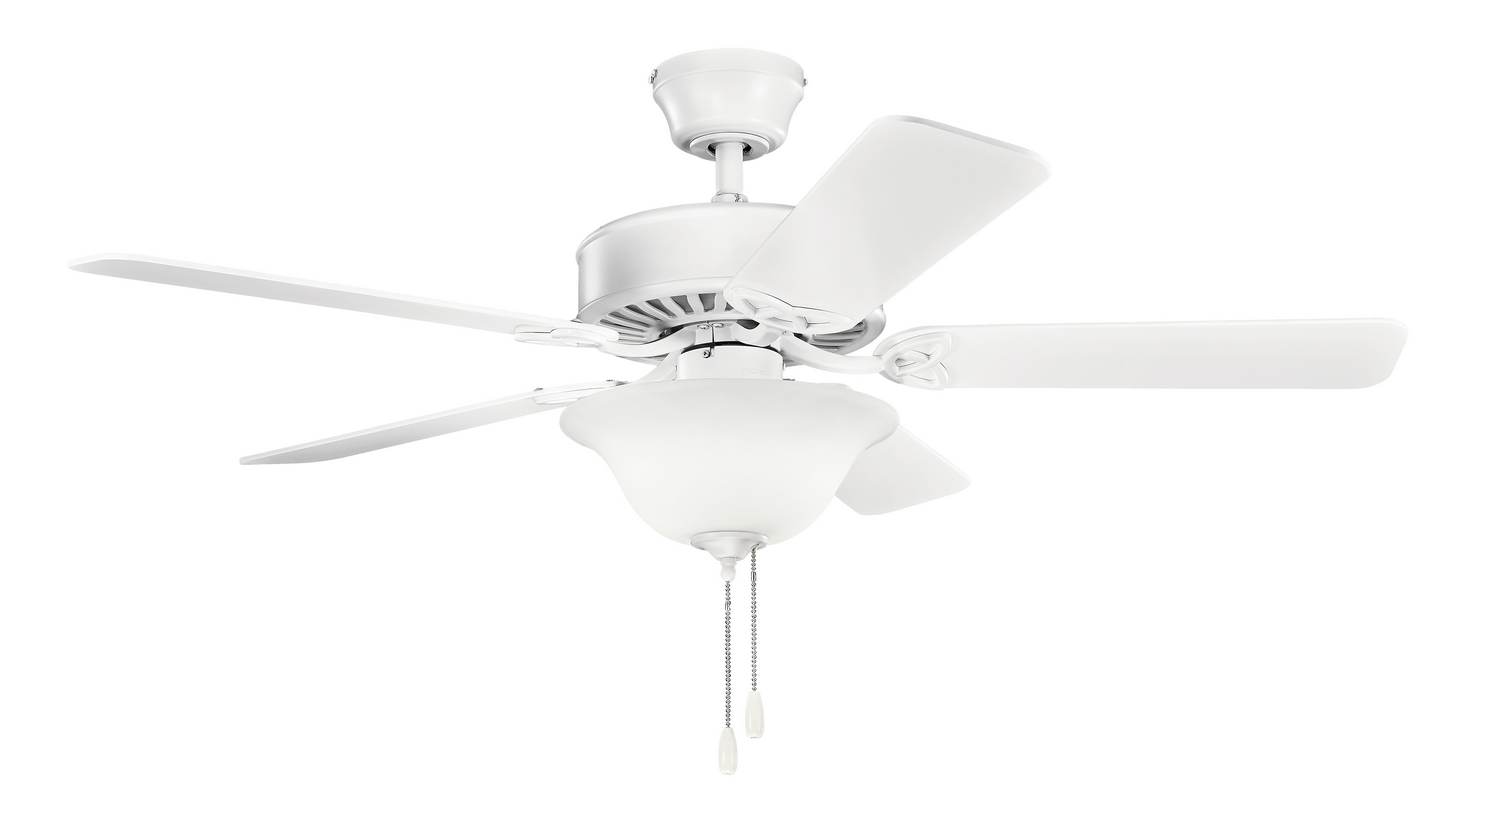 50 inchCeiling Fan from the Renew Select collection by Kichler 330110MWH